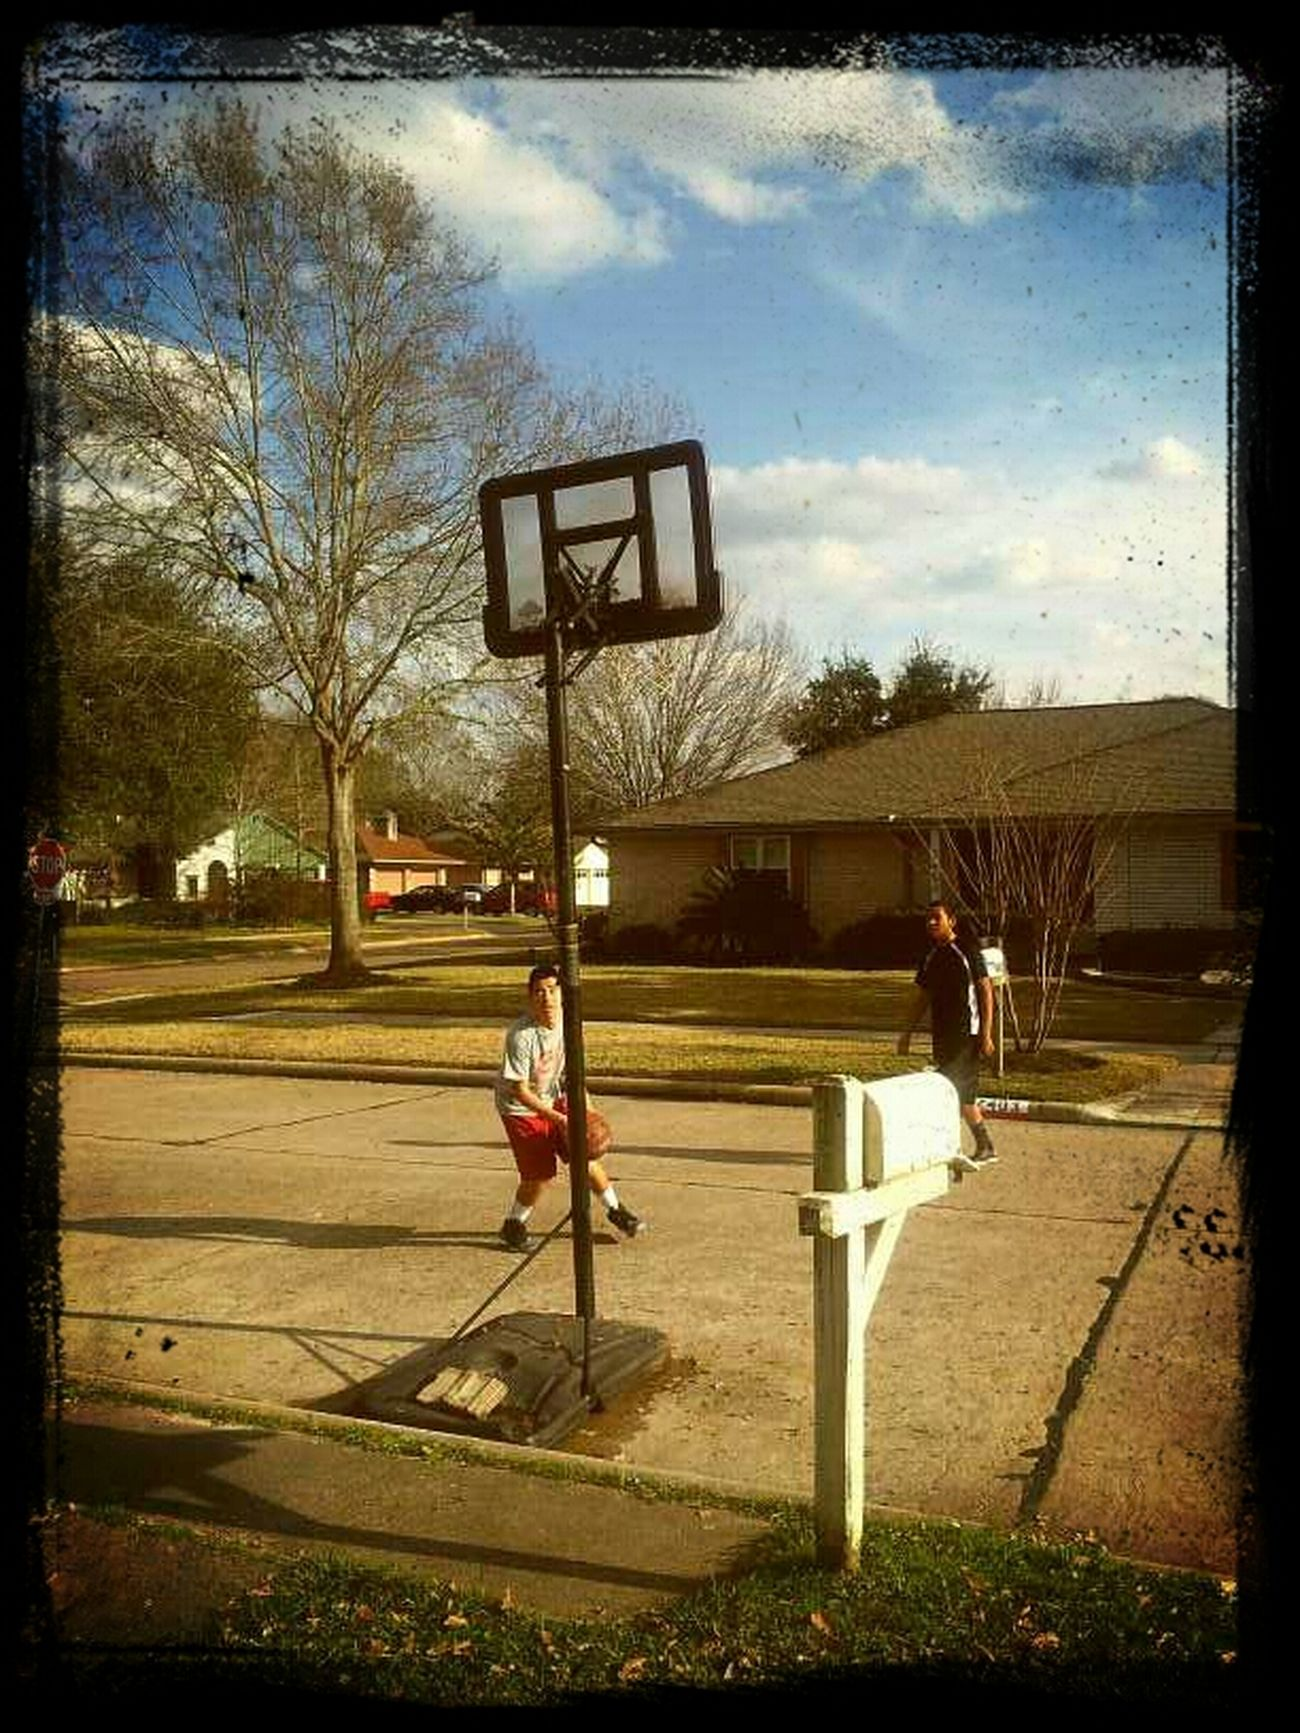 Hangin Out Shooting Hoops